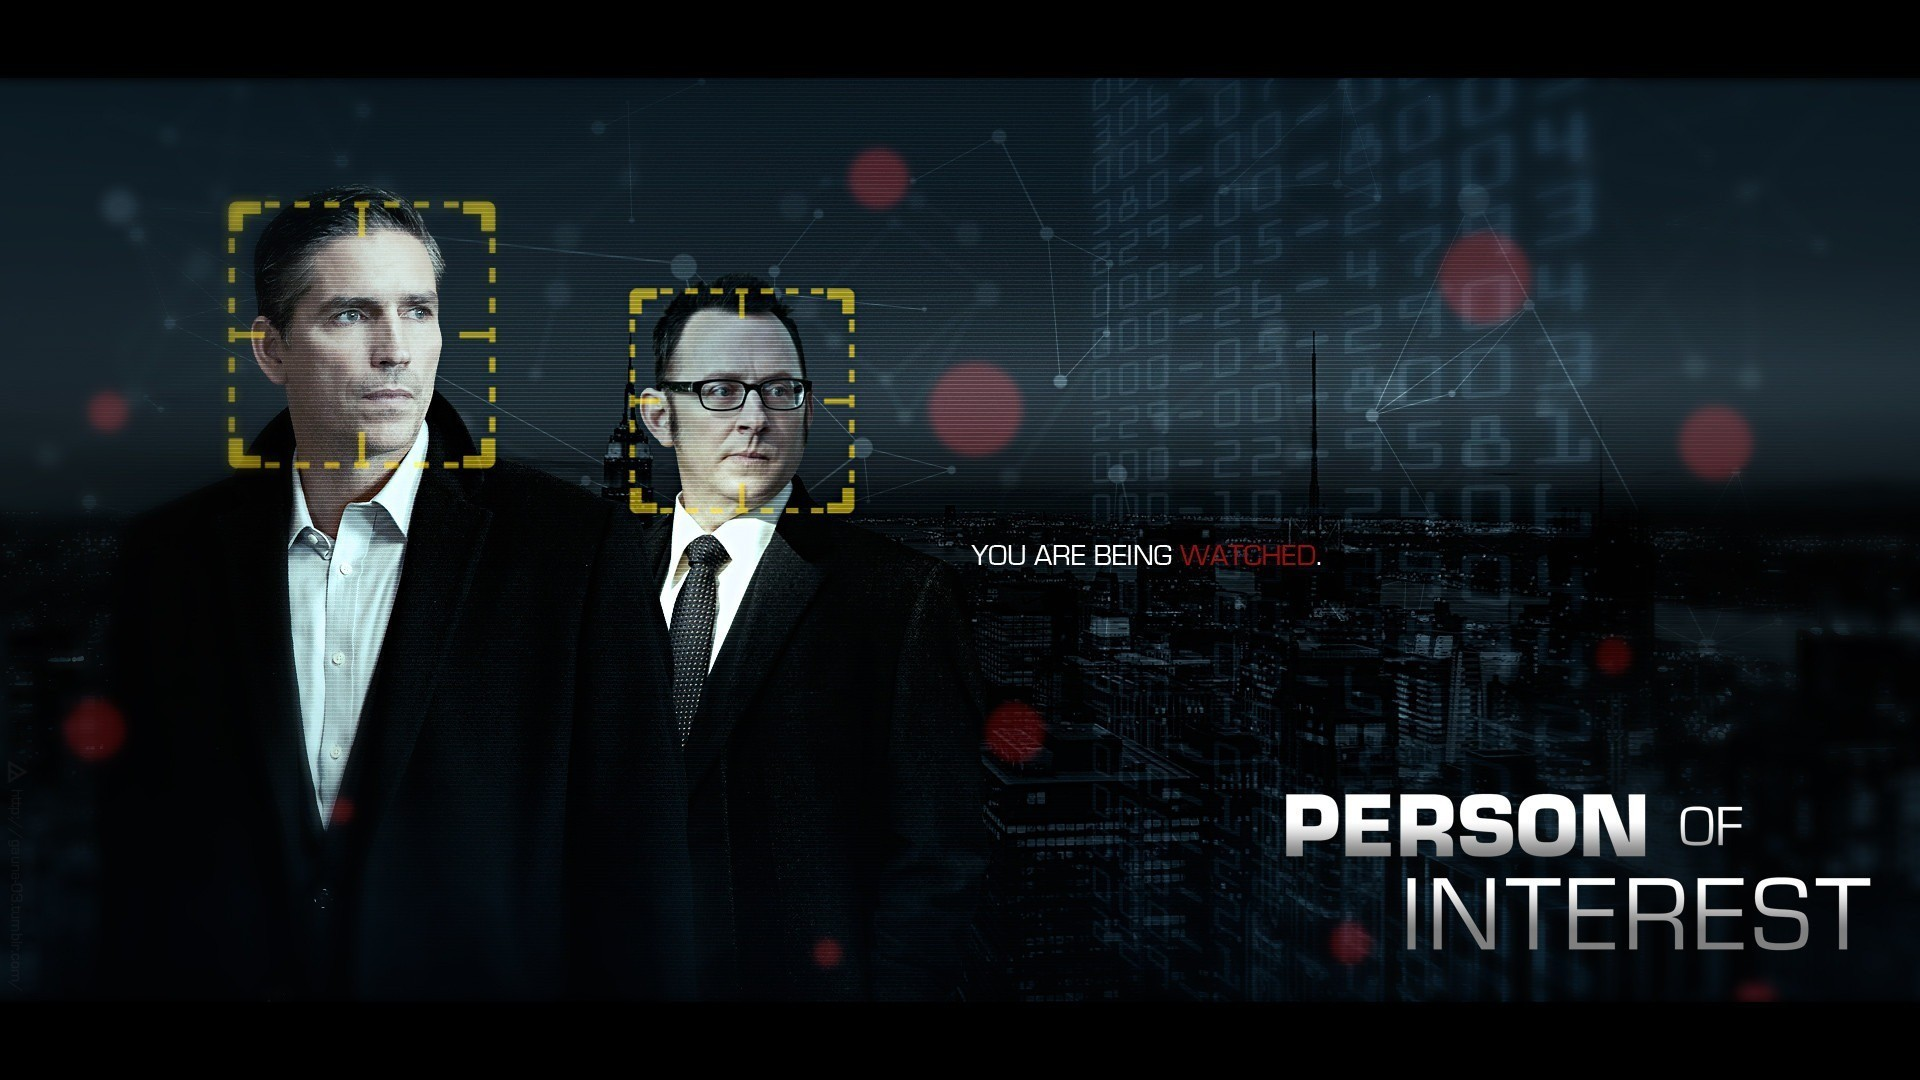 Person of Interest фото с сайта geekster.ru